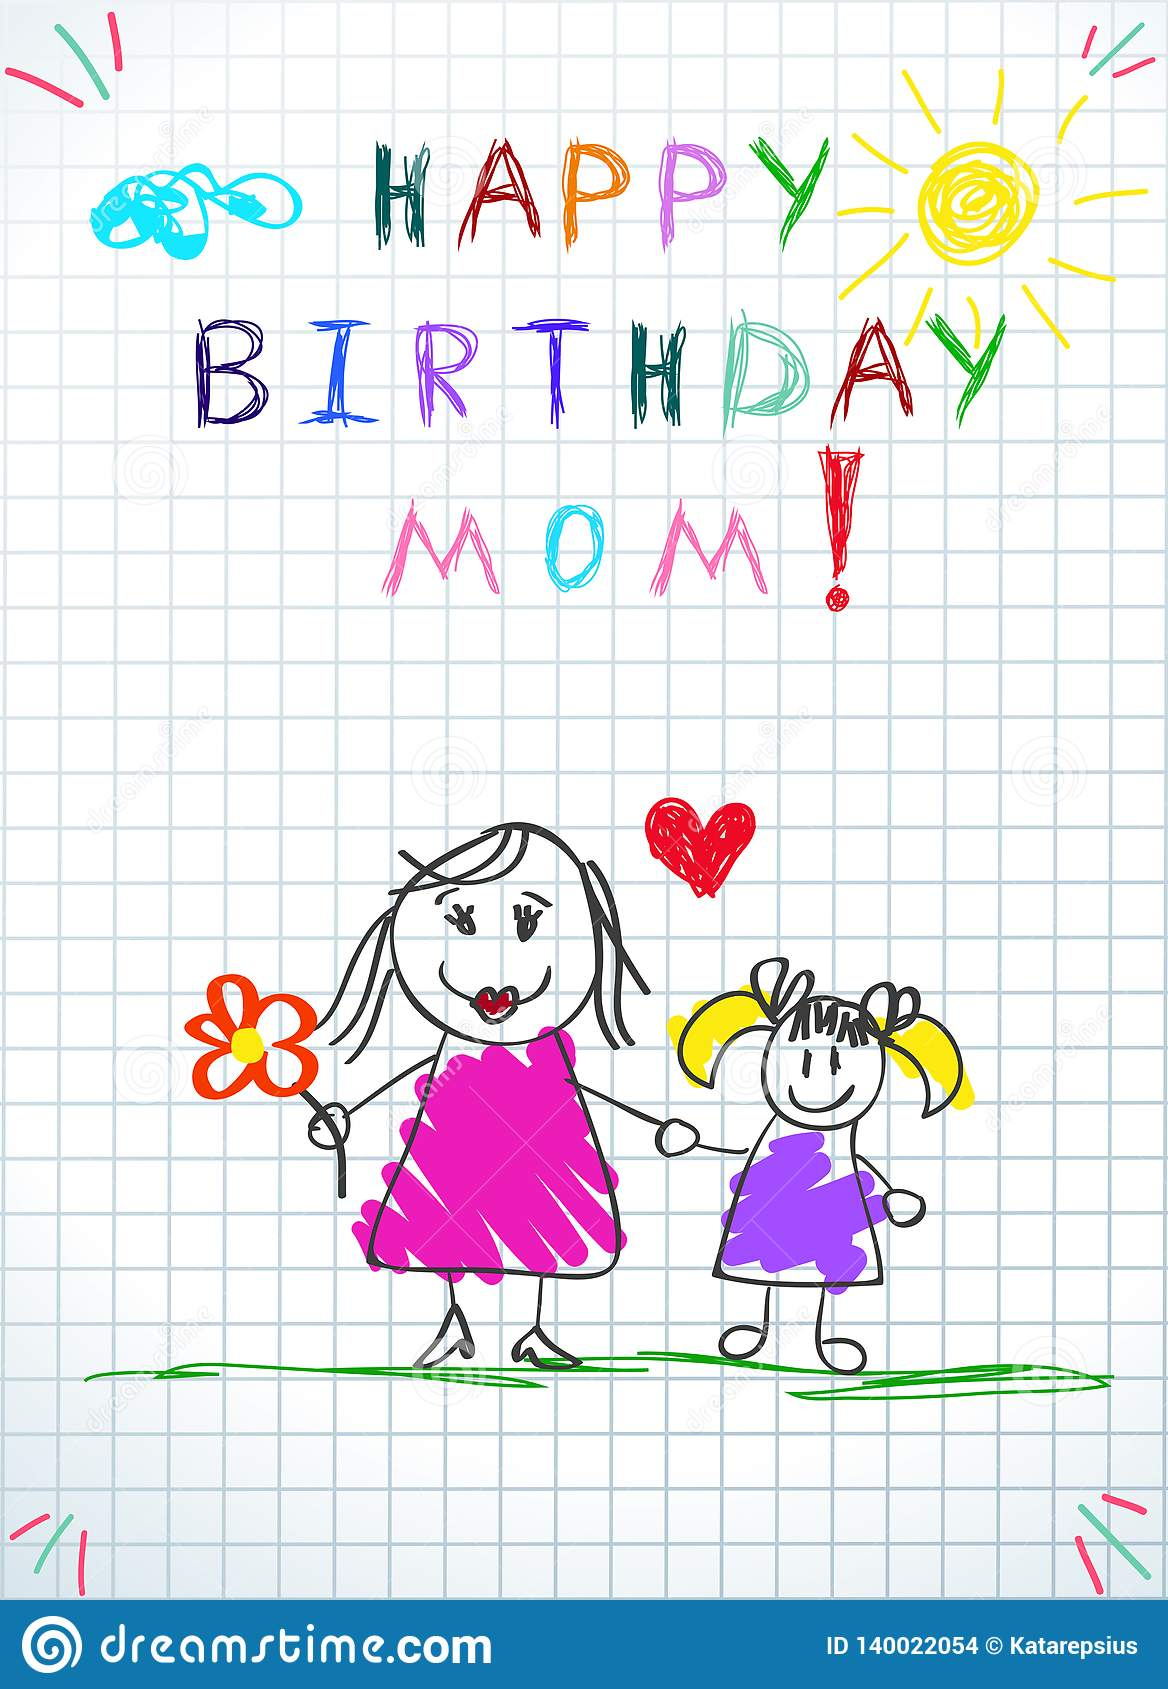 Happy Birthday Mom Hand Drawn Mother And Daughter Stock Illustration Illustration Of Drawn Color 140022054